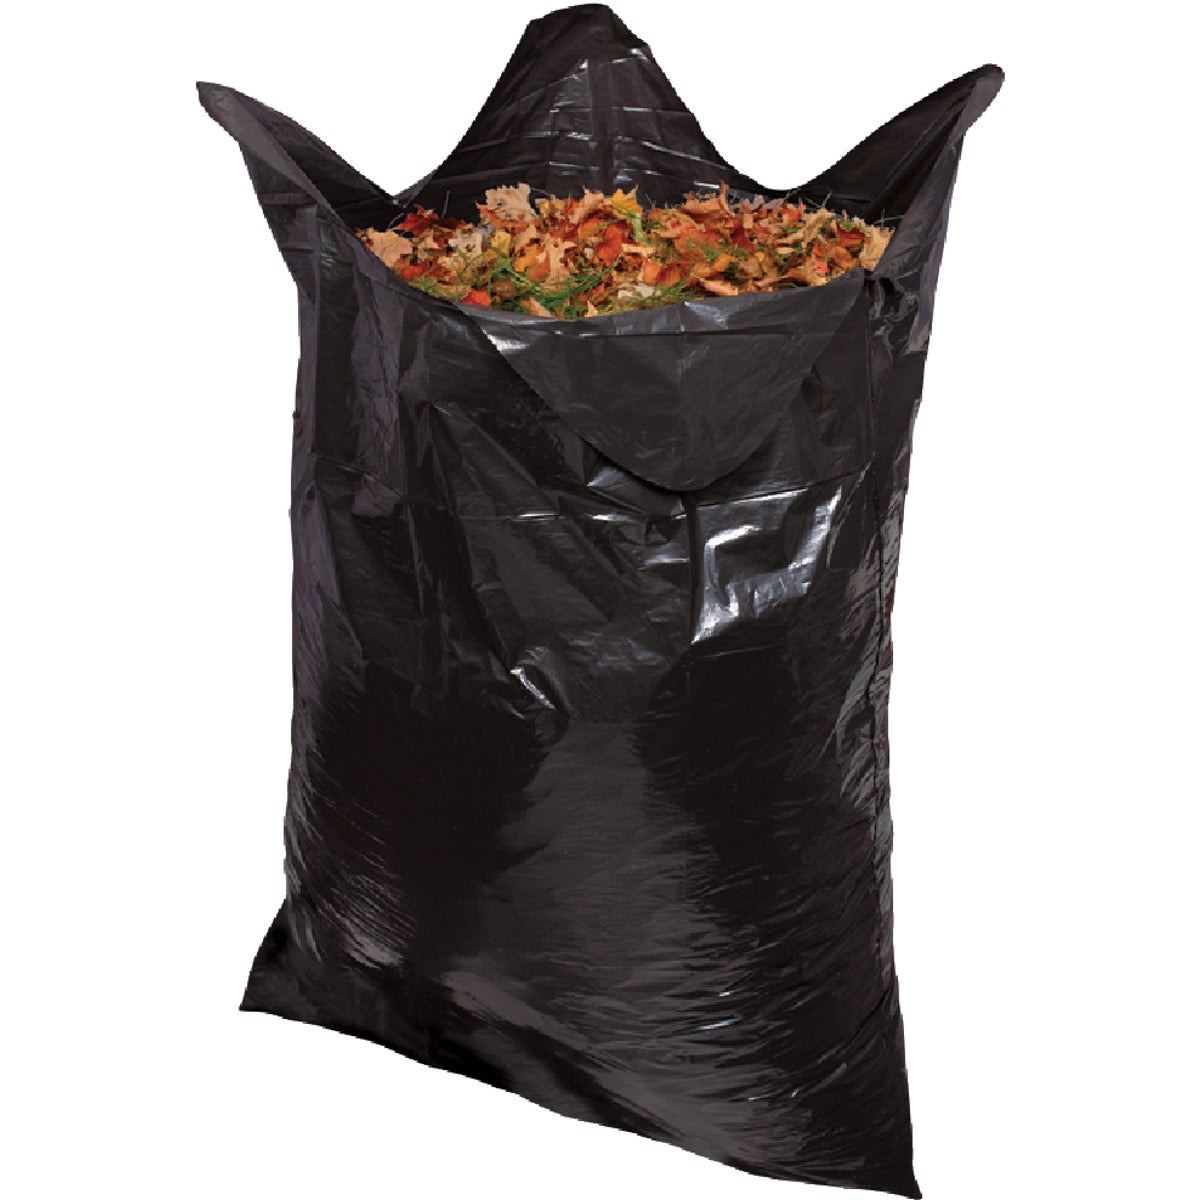 10CT 39GAL LAWN&LEAF BAG - 729180 by Presto Products